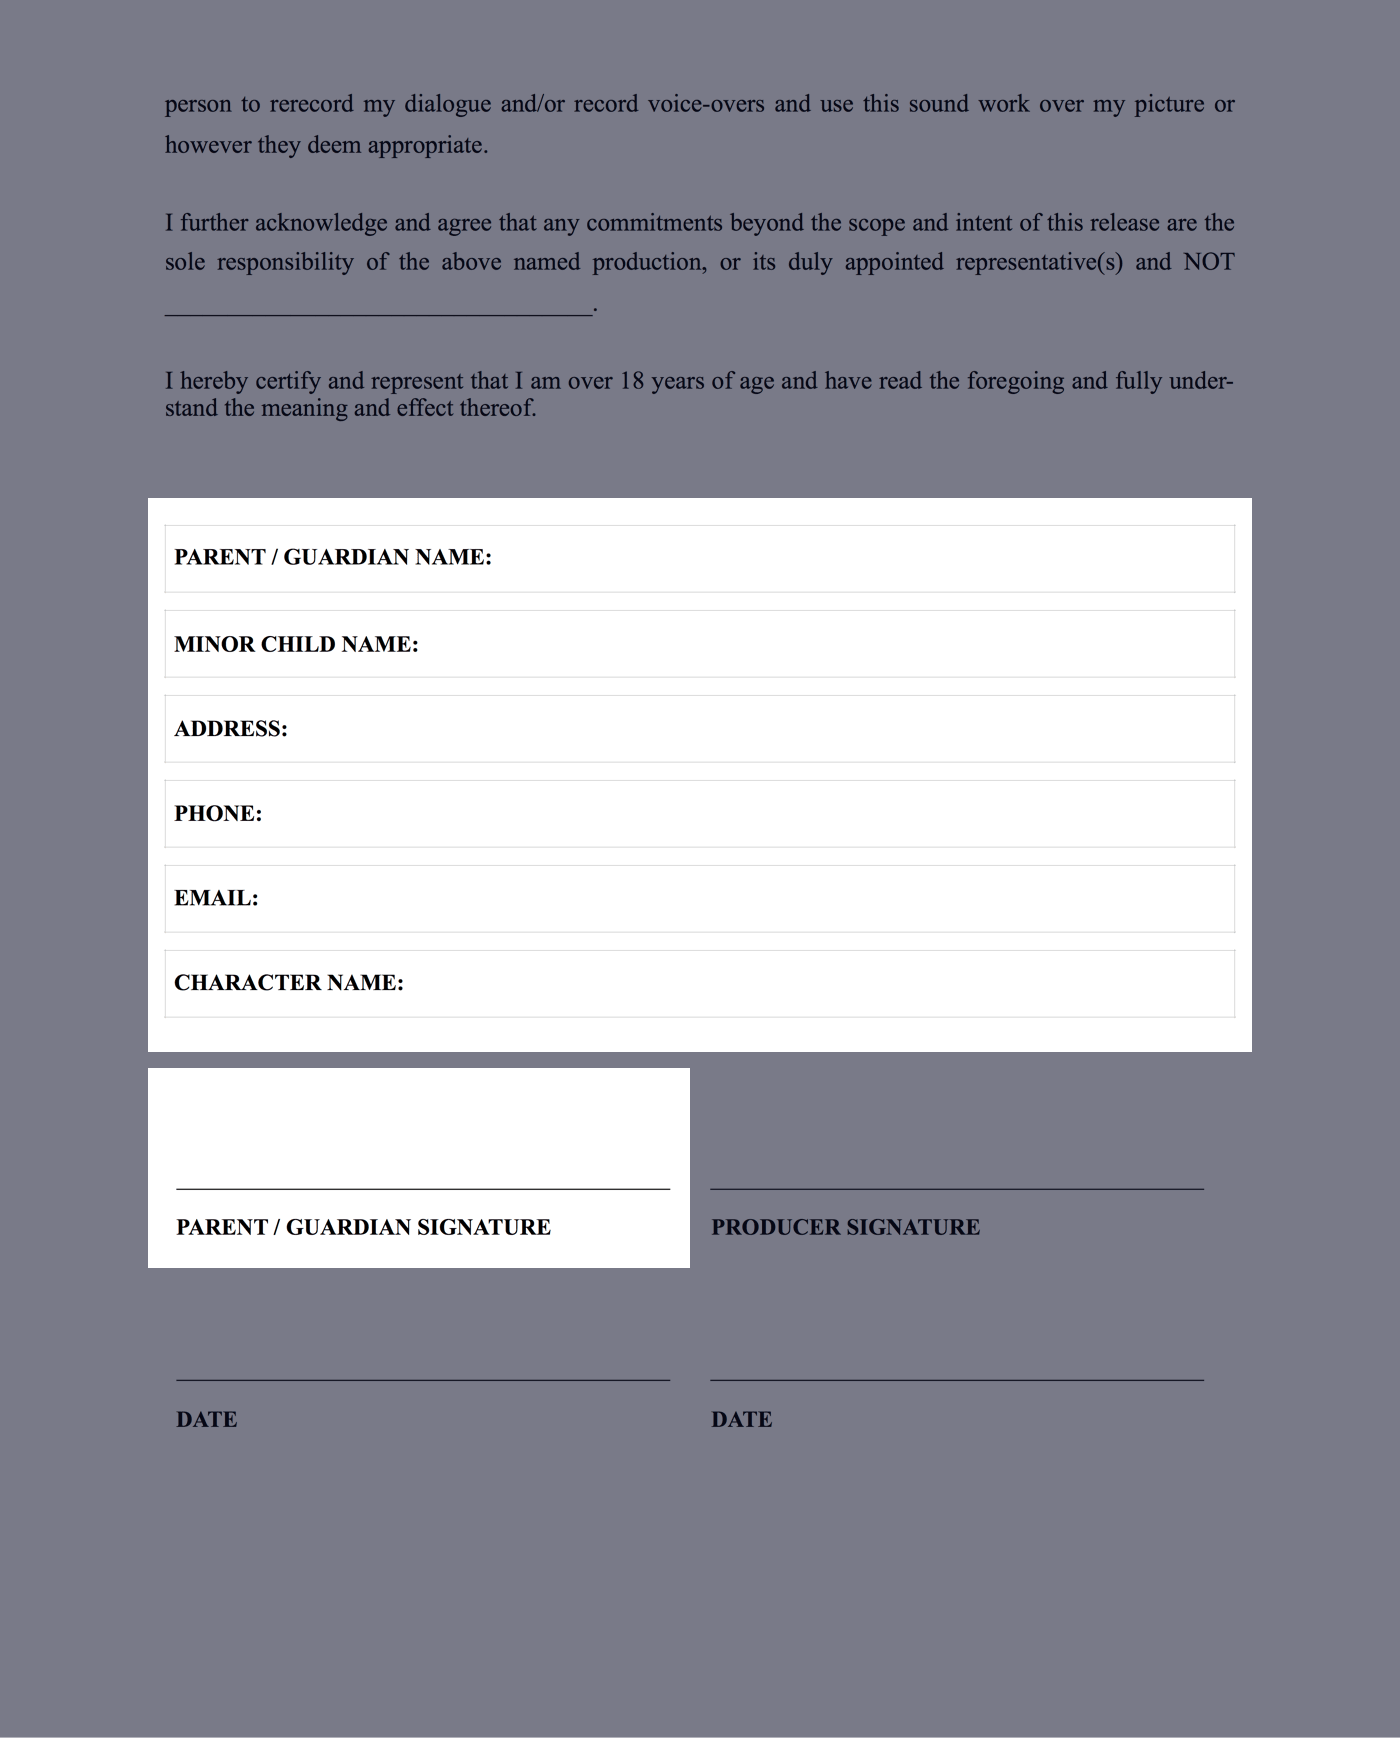 Actor Release Form for Minors - Page 2 - StudioBinder